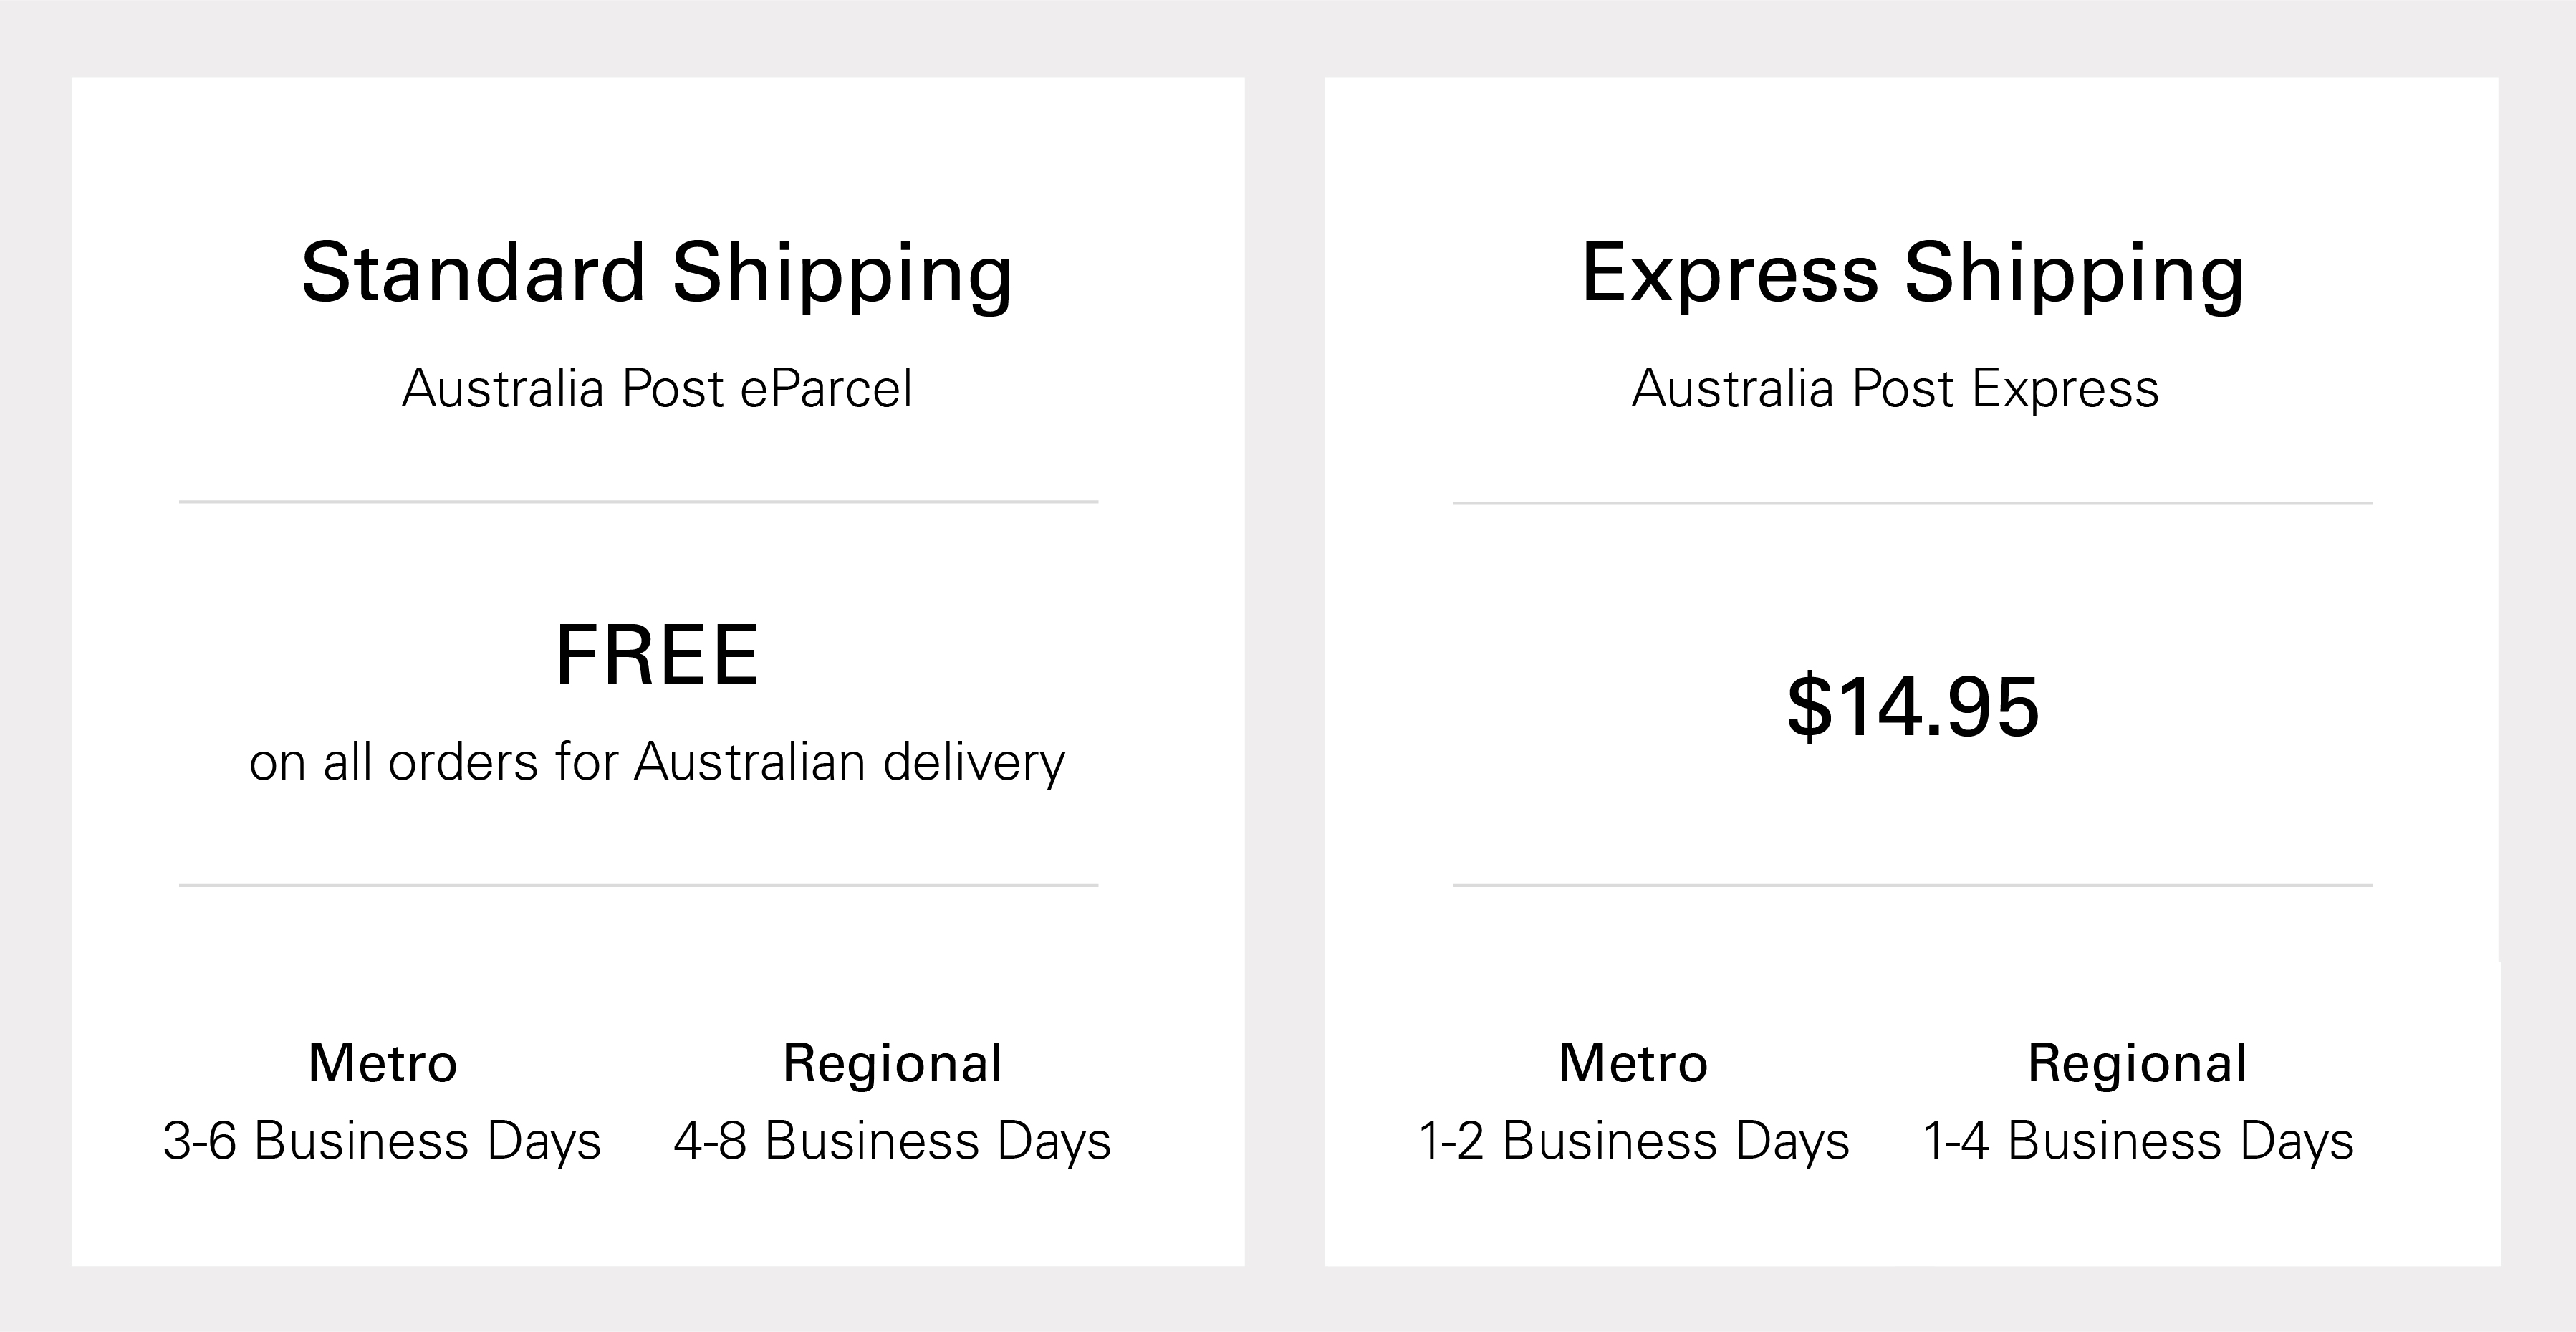 Standard Shipping Free on all Australian Orders